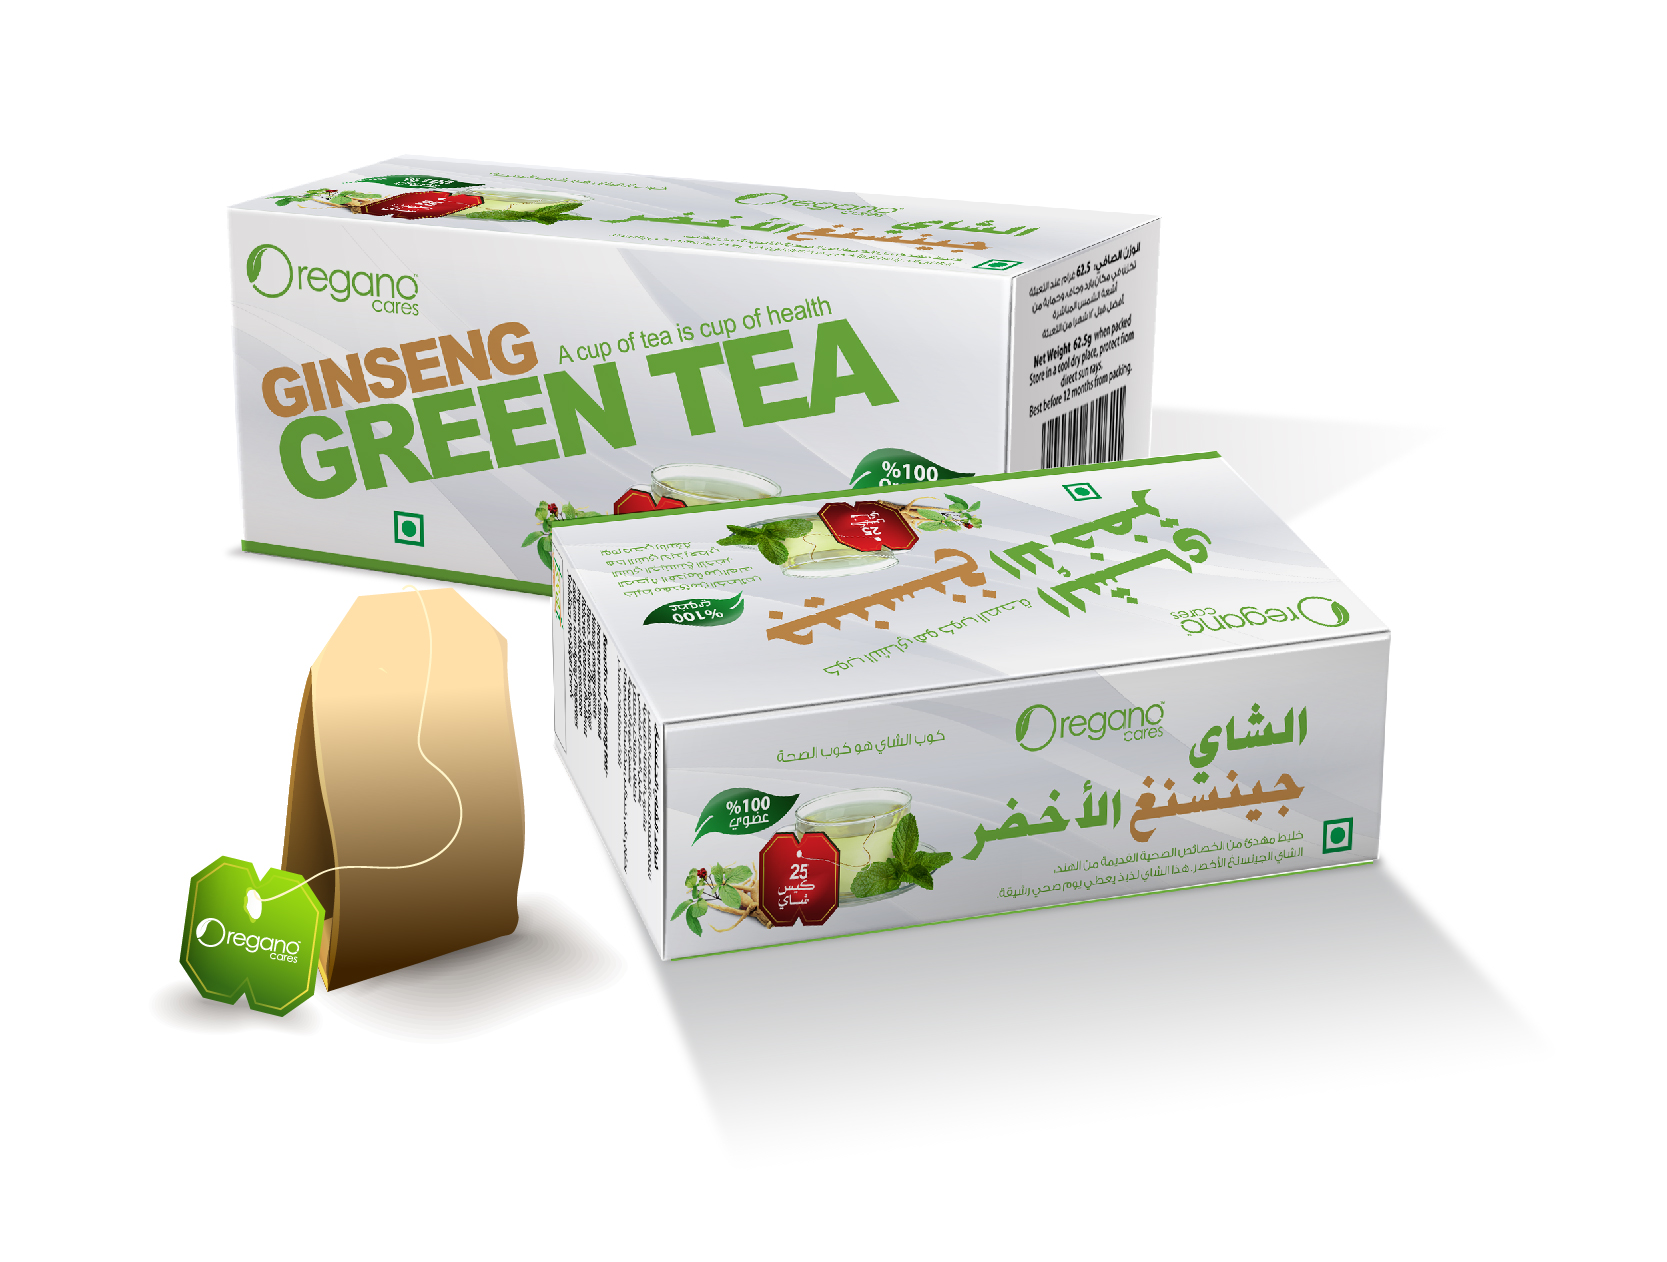 Oregano Cares Ginseng Green Tea